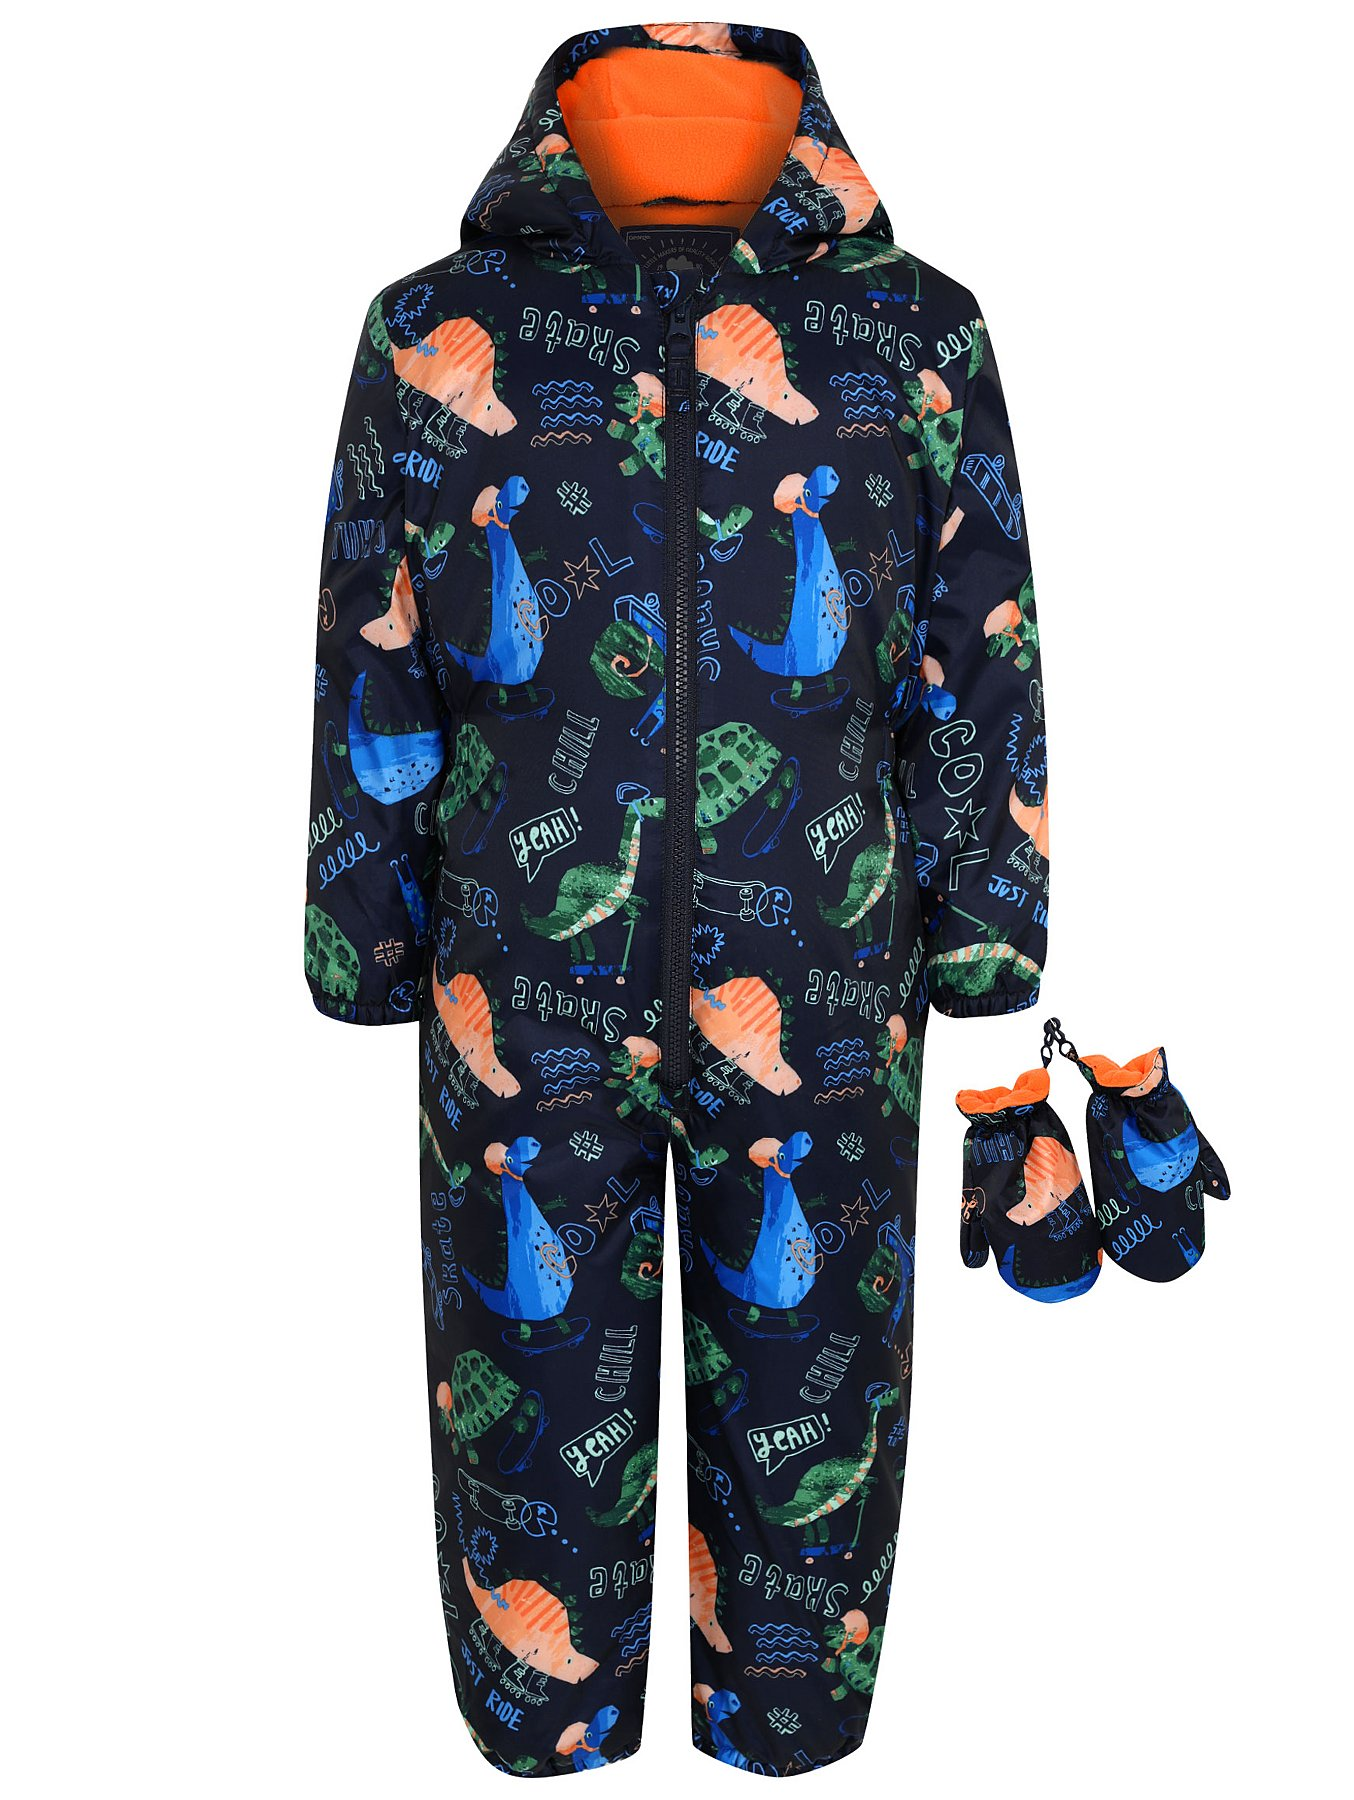 429cfd45a Navy Dinosaur Print Snowsuit and Mittens